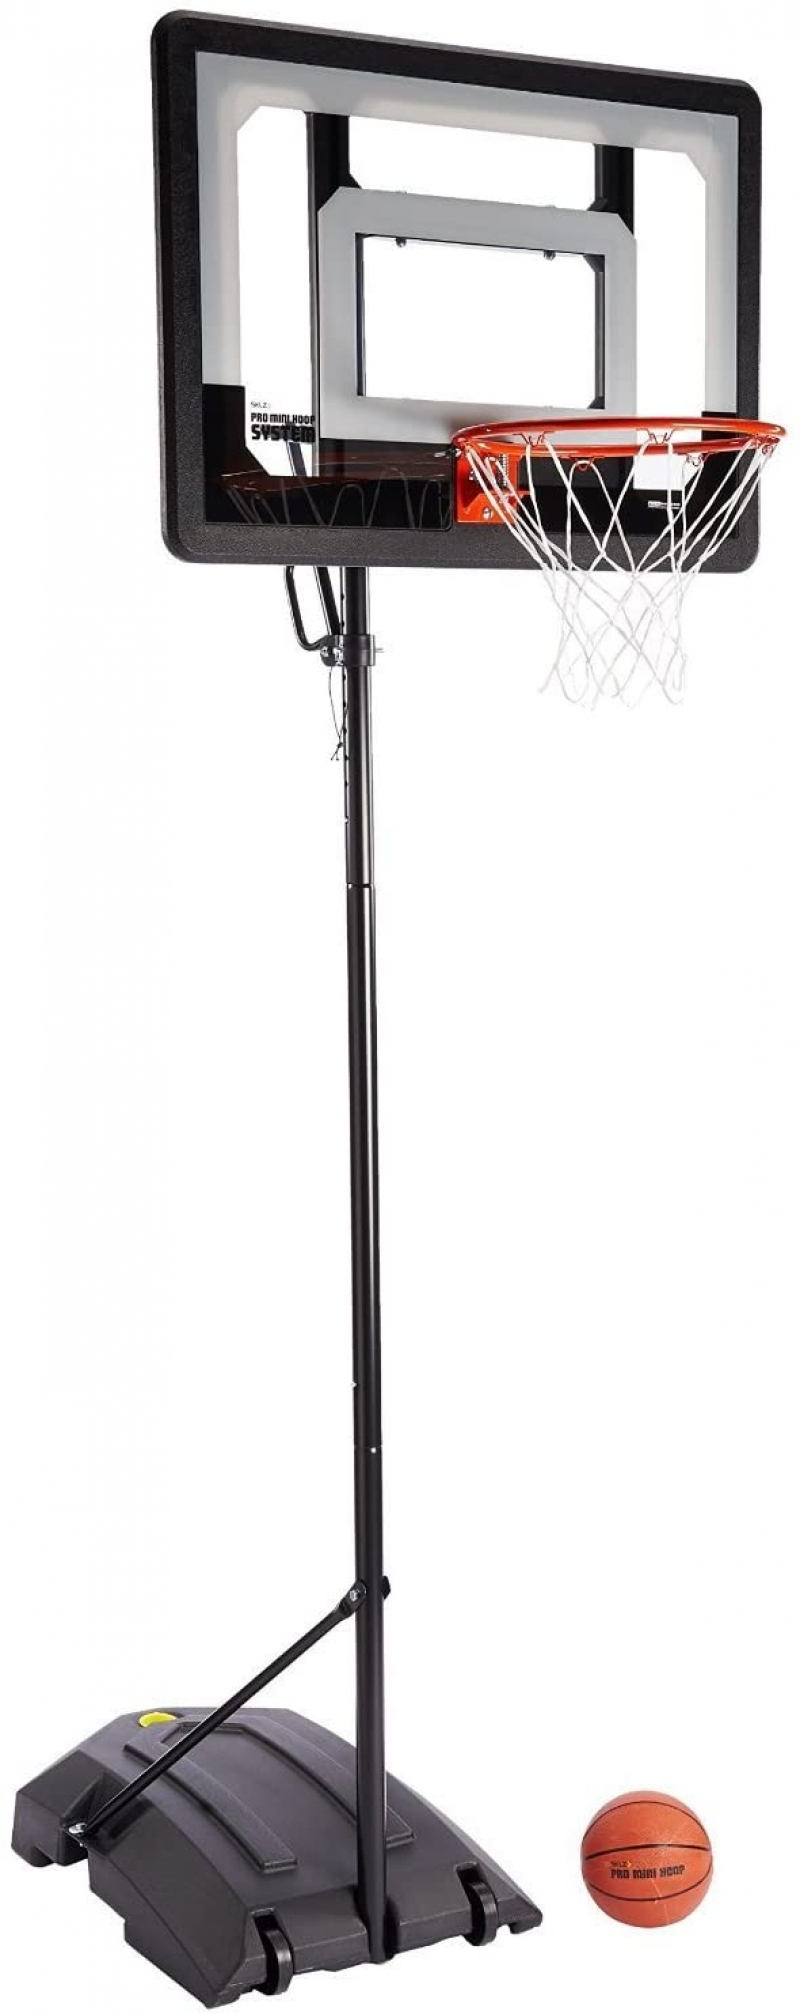 ihocon: SKLZ Pro Mini Hoop Basketball System with Adjustable-Height Pole and 7-Inch Ball 小型籃球框及籃球